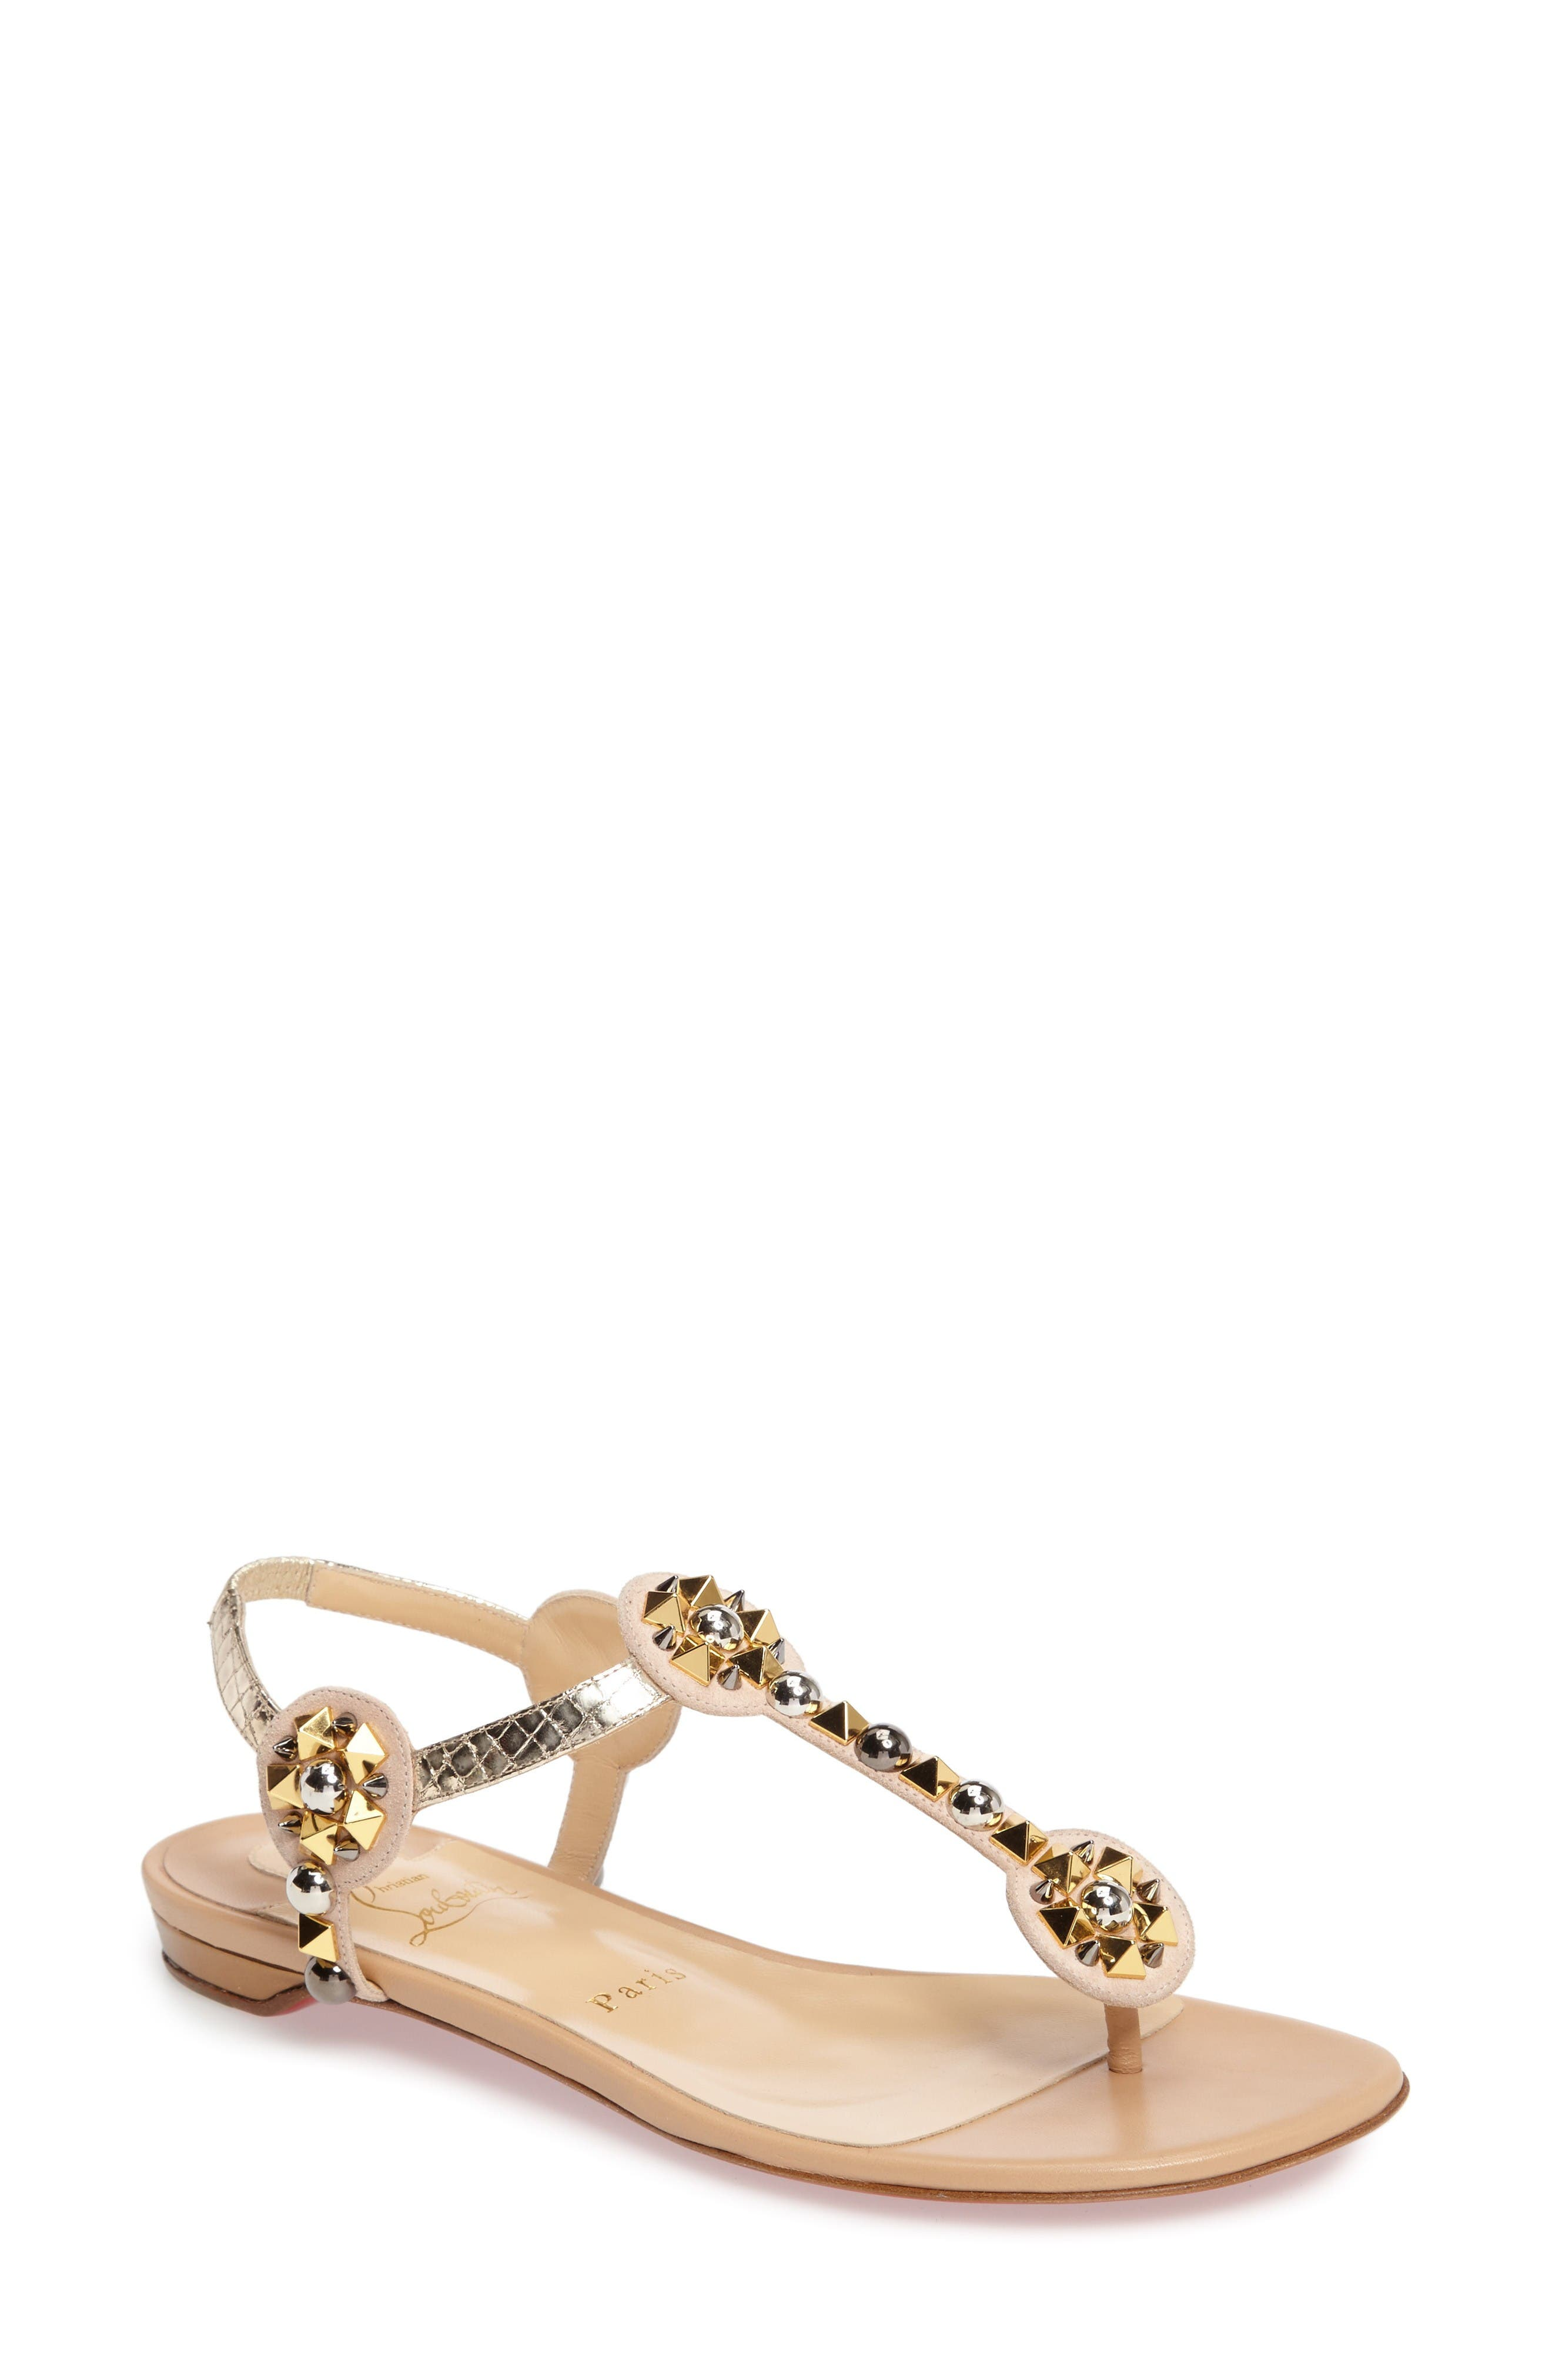 Kaleidra T-Strap Sandal,                         Main,                         color, Nude Leather